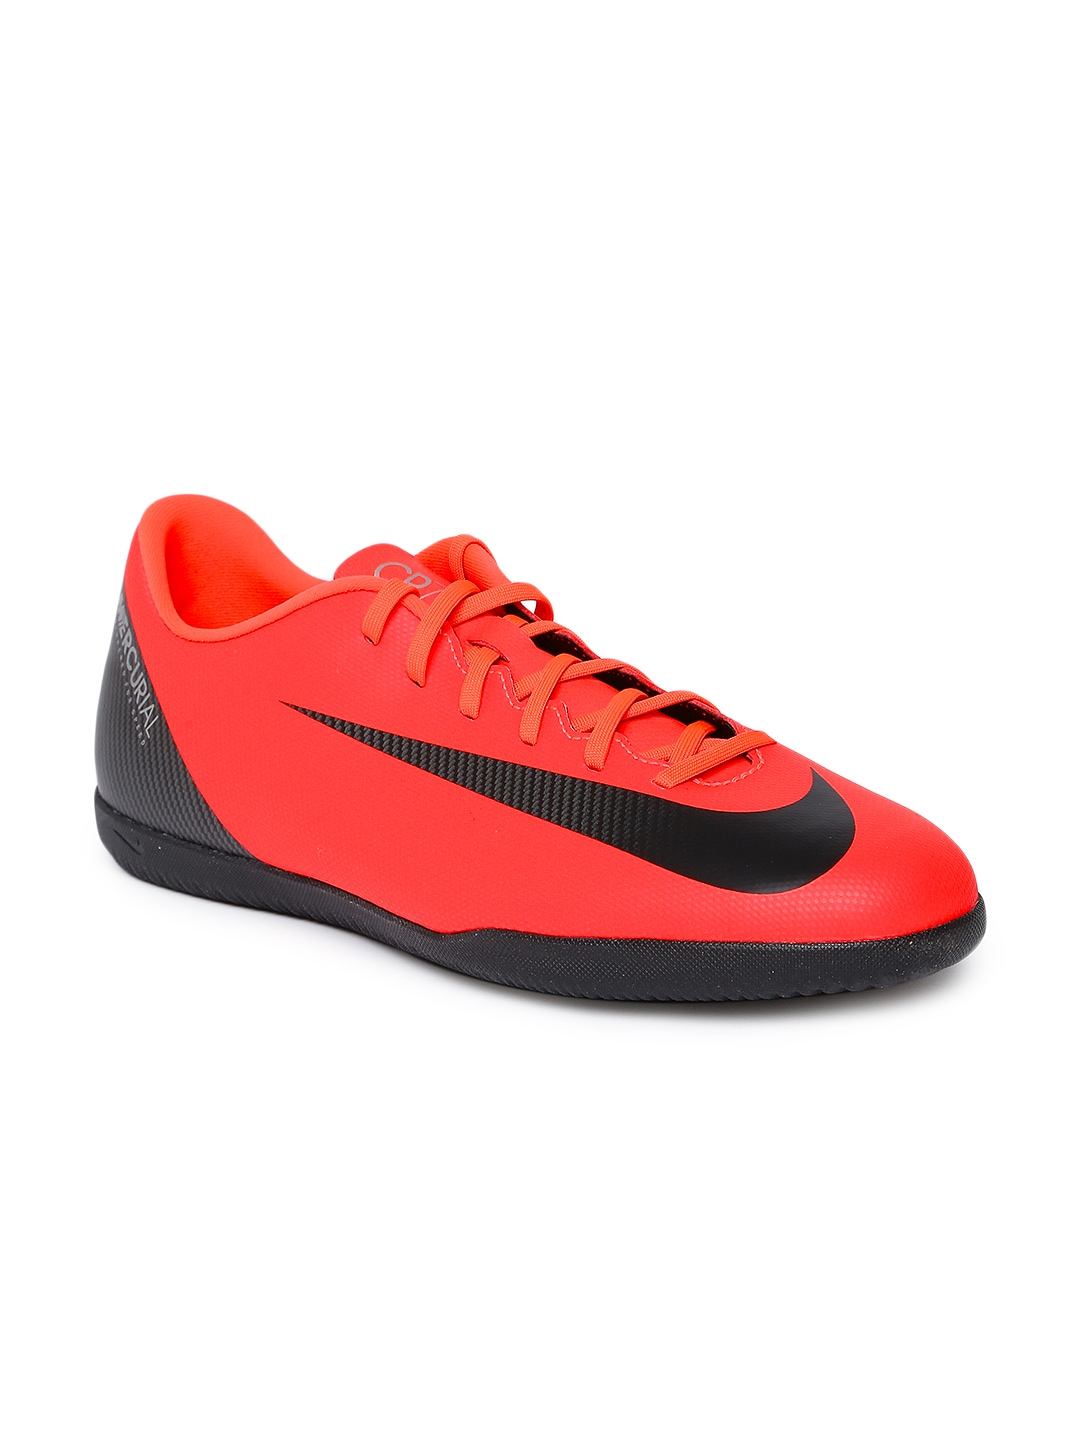 e951c068cb8 12 No Sports Shoes - Buy 12 No Sports Shoes online in India